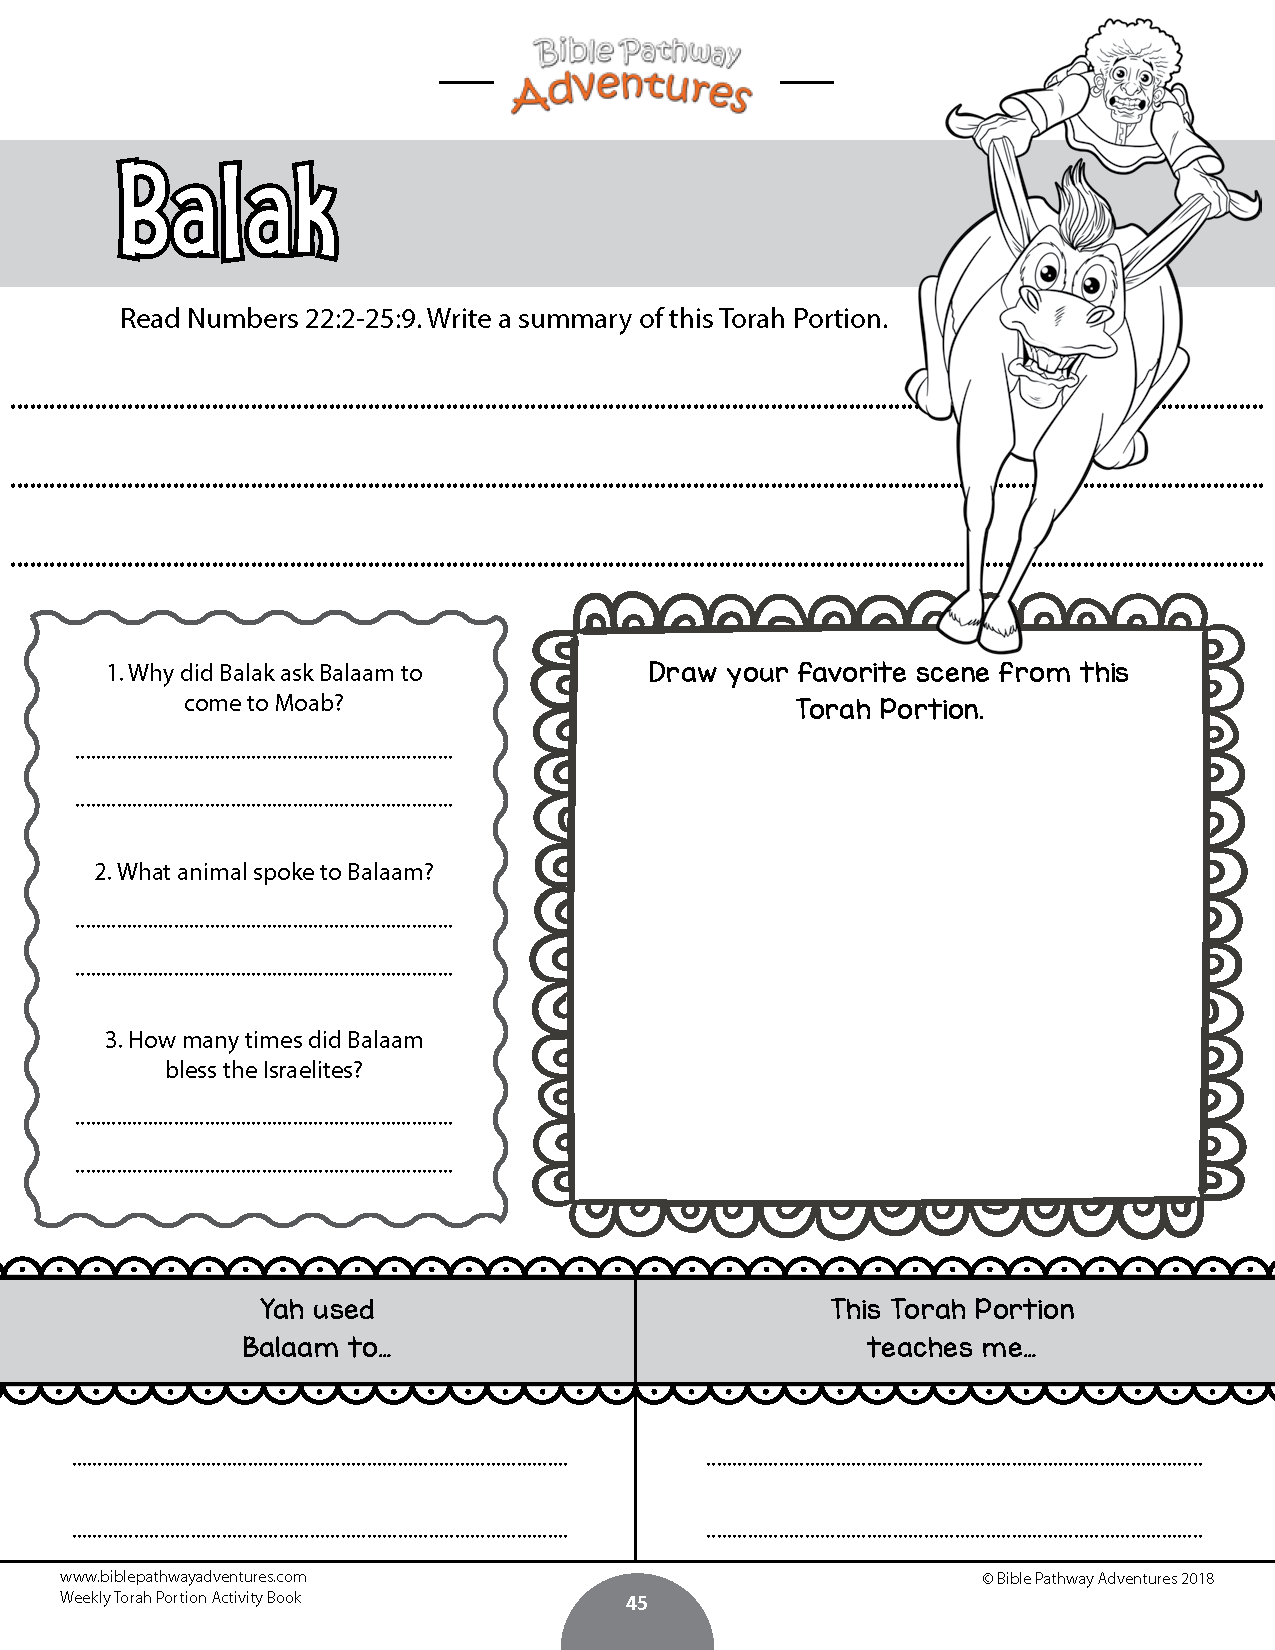 Weekly Torah Portion Coloring Activity Book – Bible Pathway